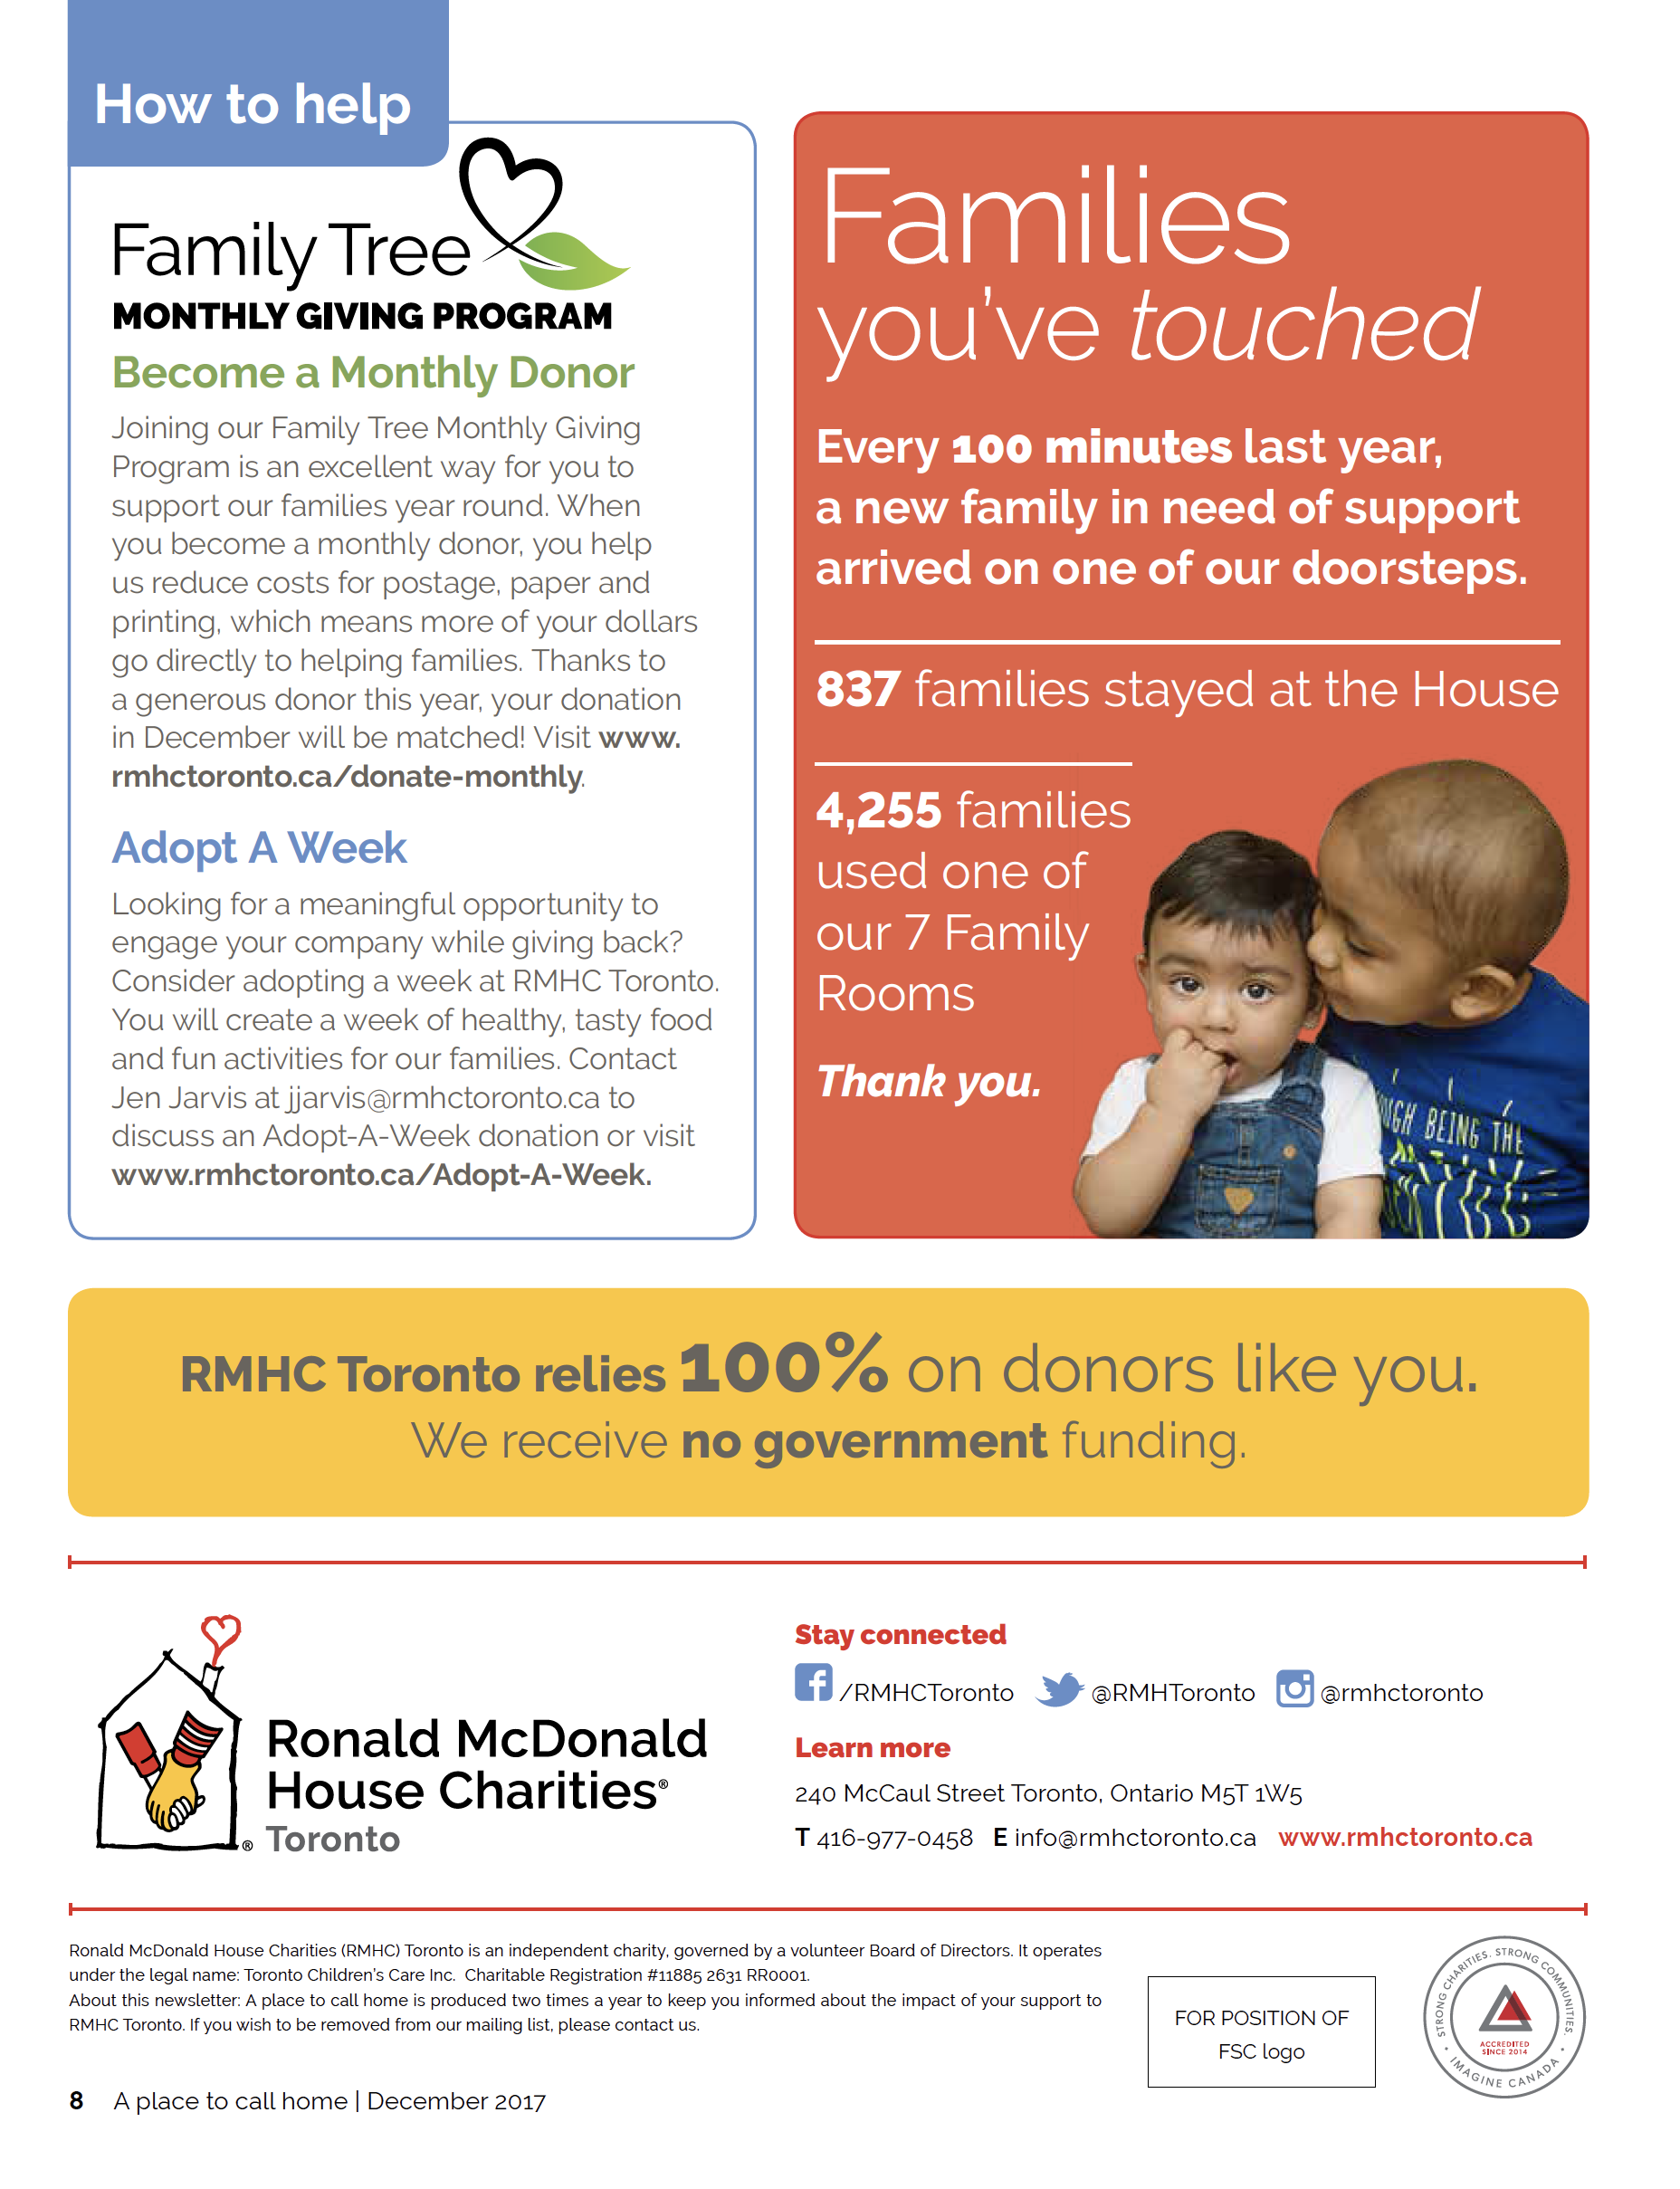 Ronald McDonald House Family Photogr